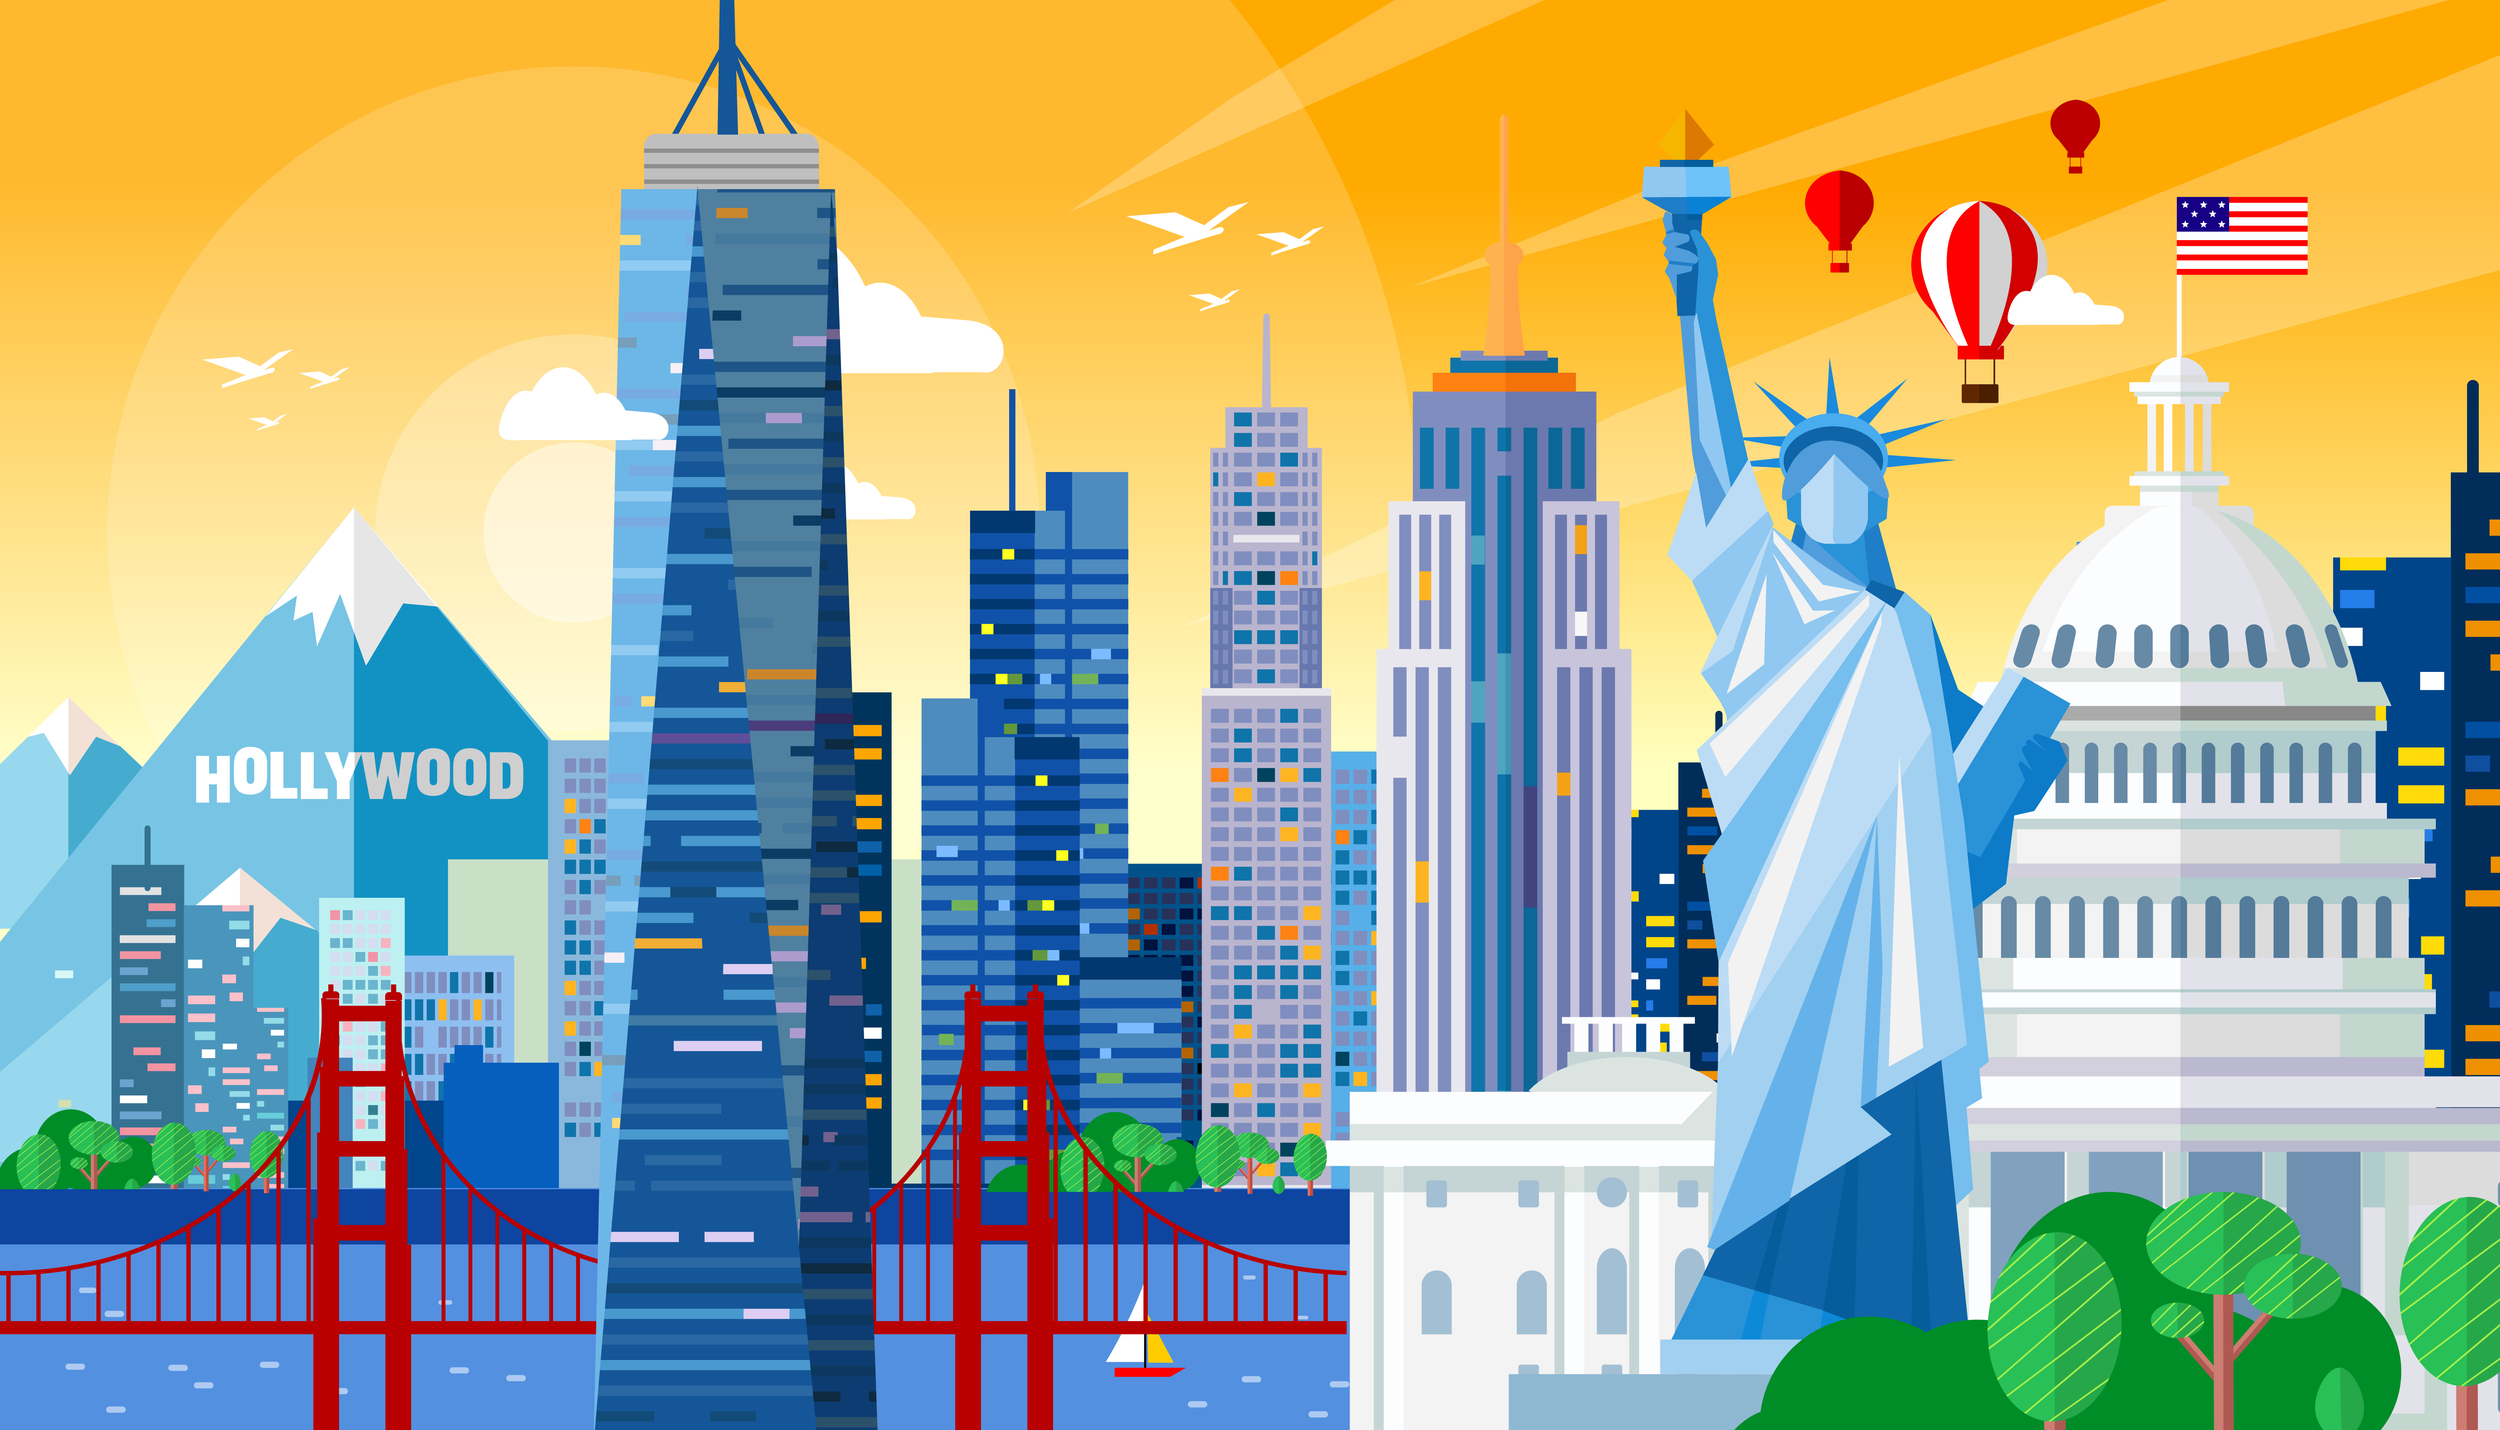 Labor Day colorful background with Statue of Liberty, White House, Golden Gate Bridge and more U.S. Landmarks